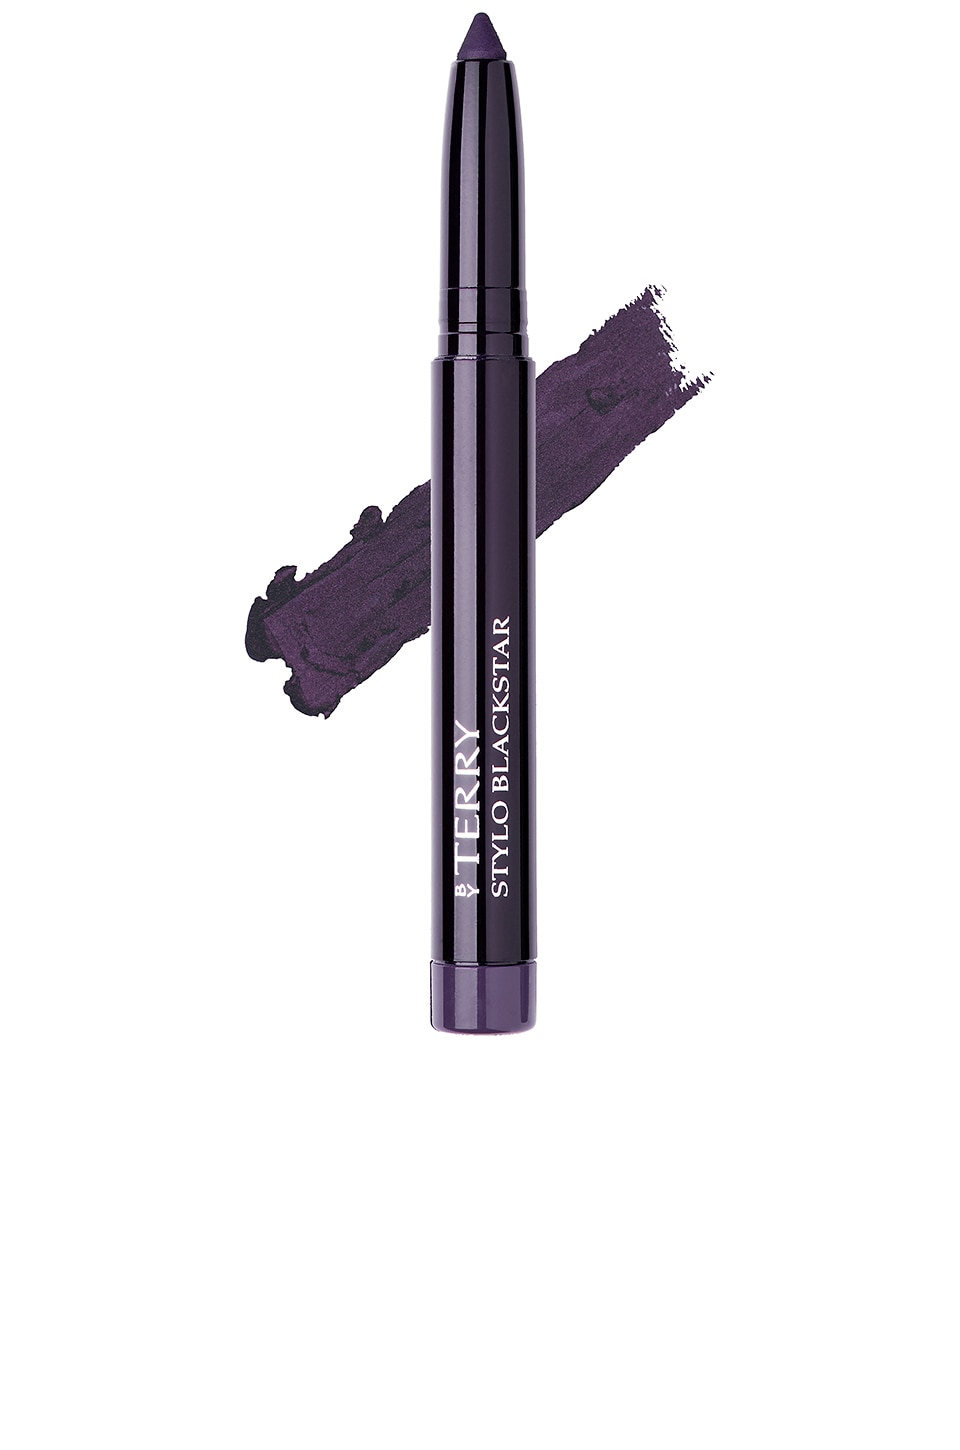 By Terry Stylo Blackstar 3-in-1 Eyeliner, Eye Shadow, Eye Contour in Purpulyn Gem